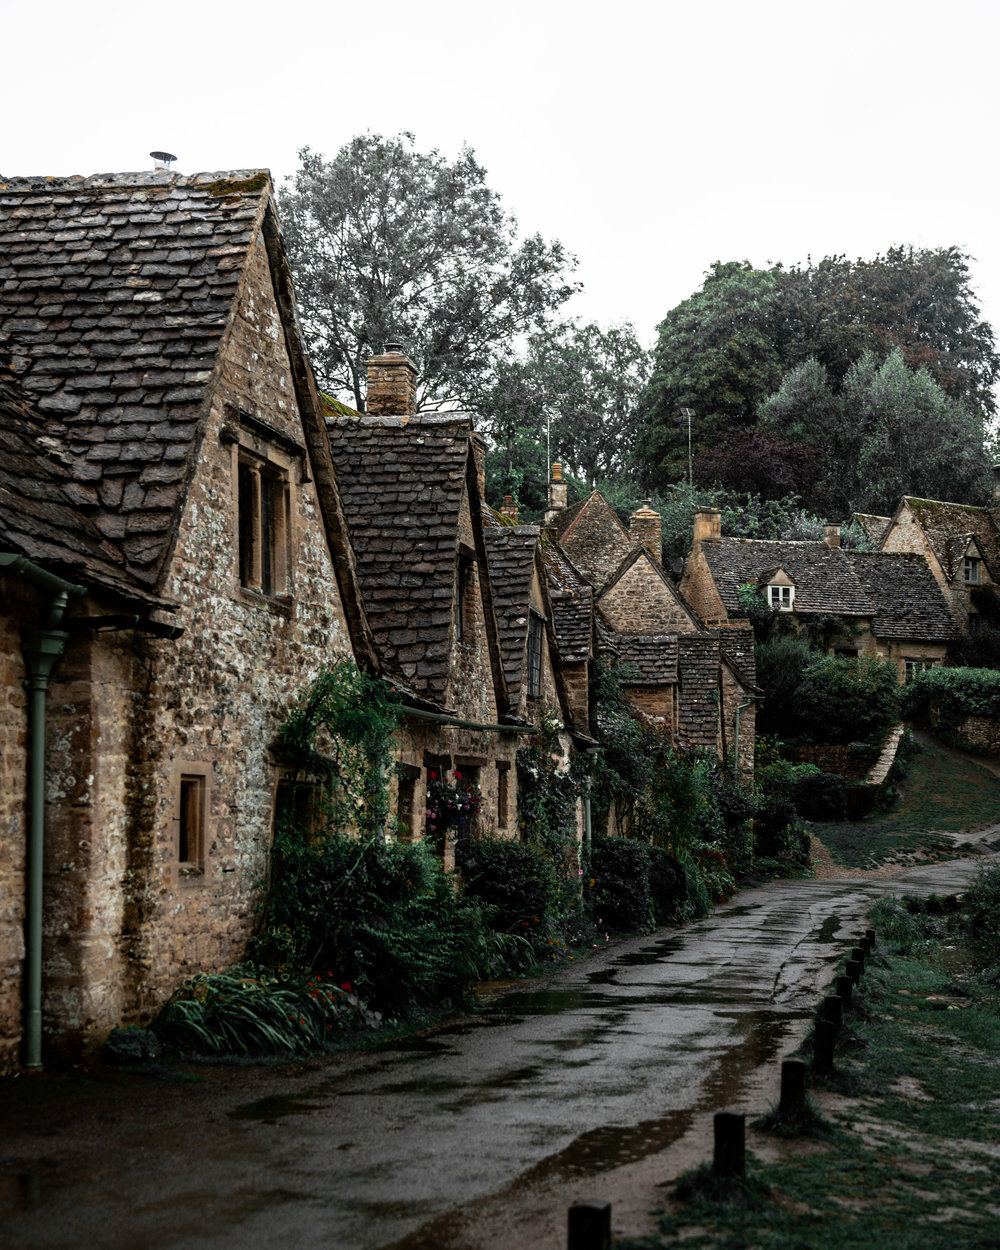 Arlington Row, Bibury, Gloucestershire